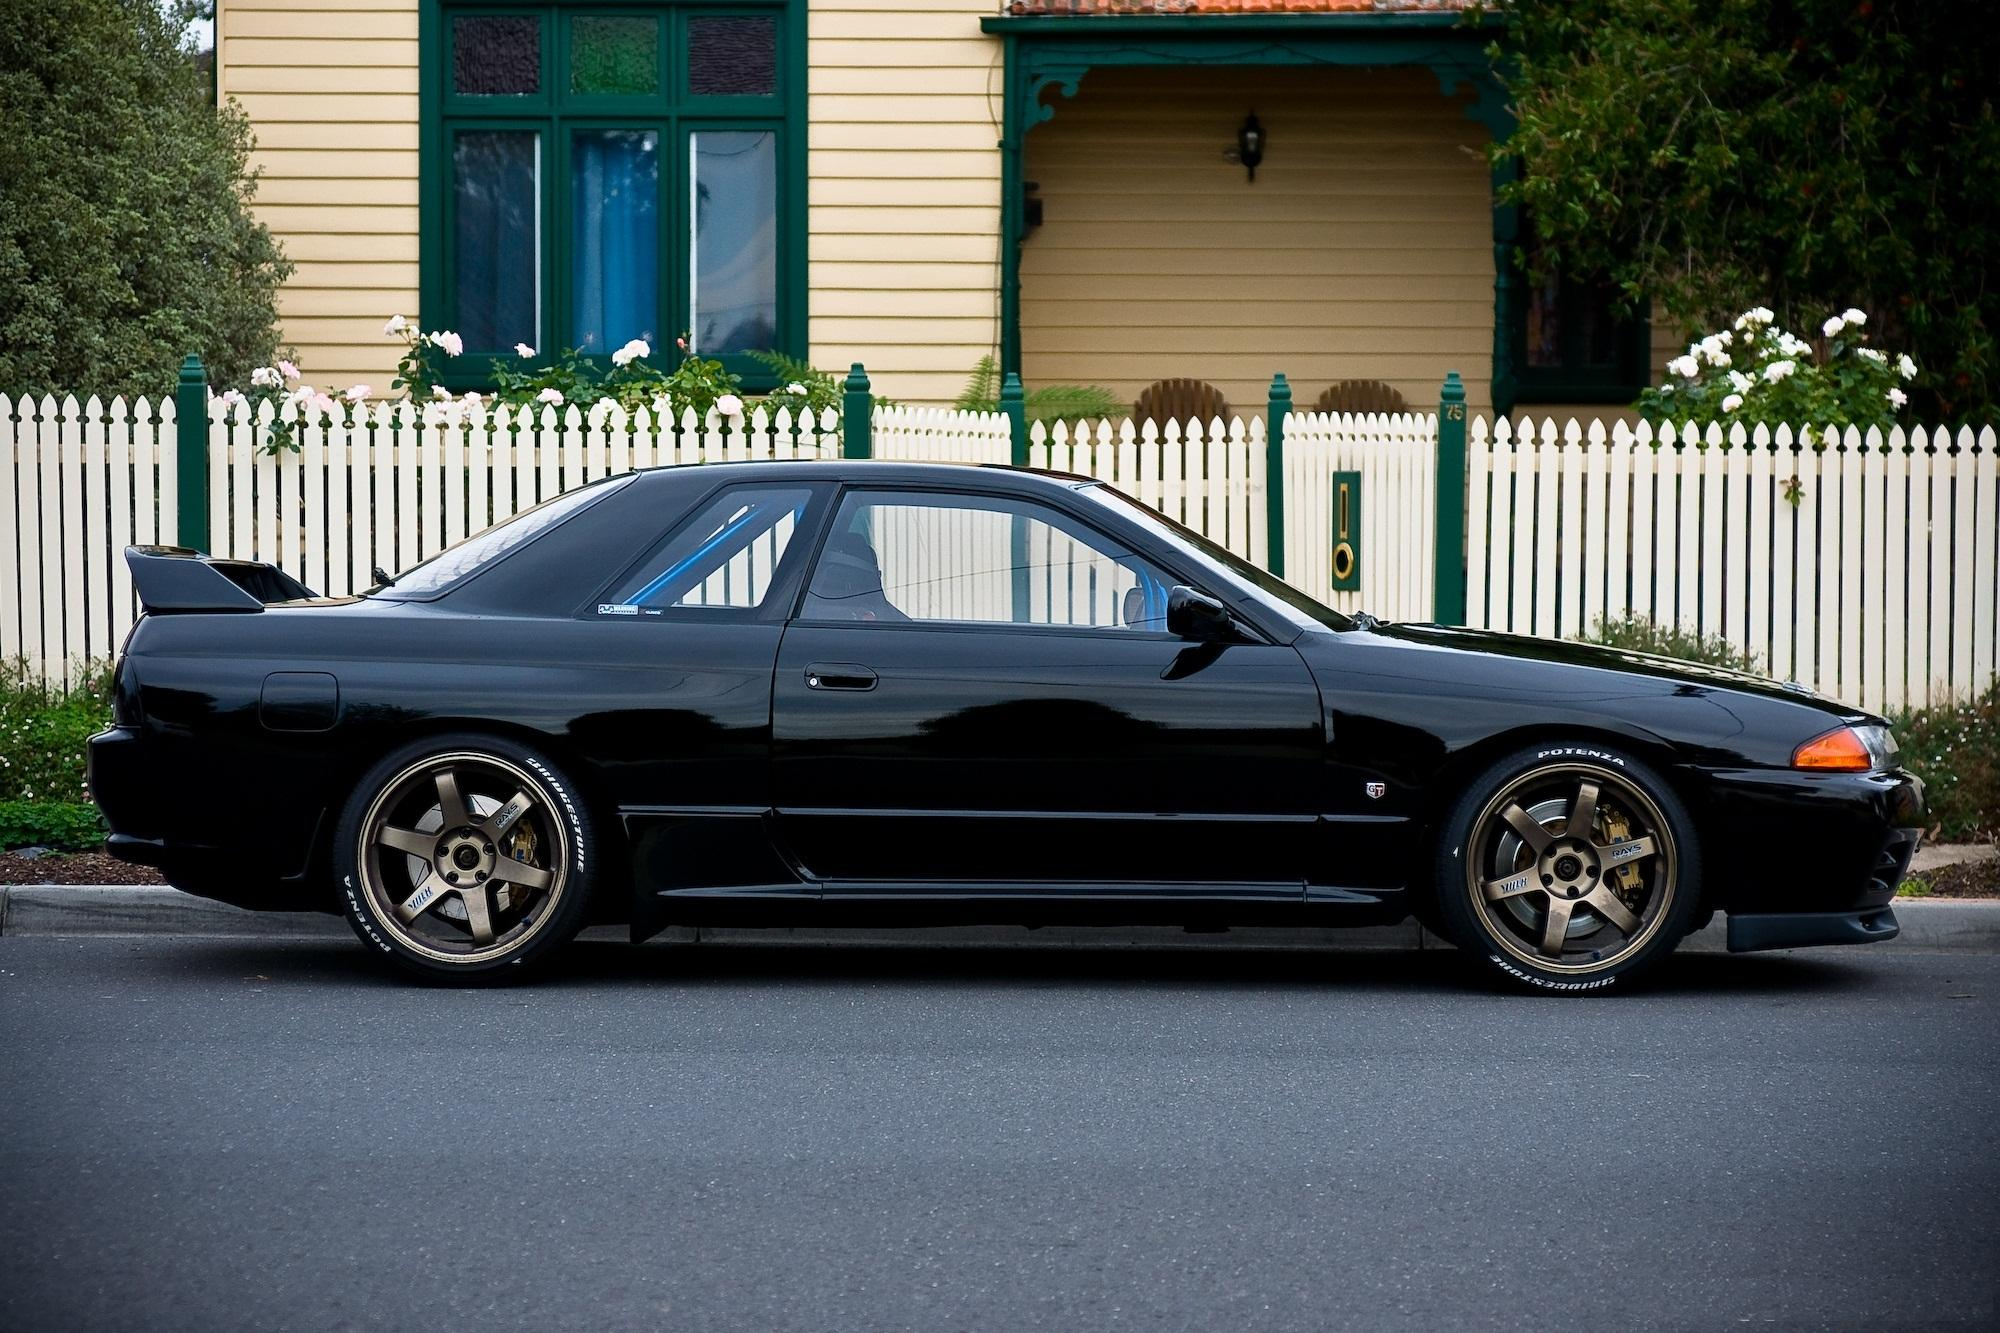 Skyline R32 Wallpaper Nissan Skyline Gtr R32 Jdm 1533925